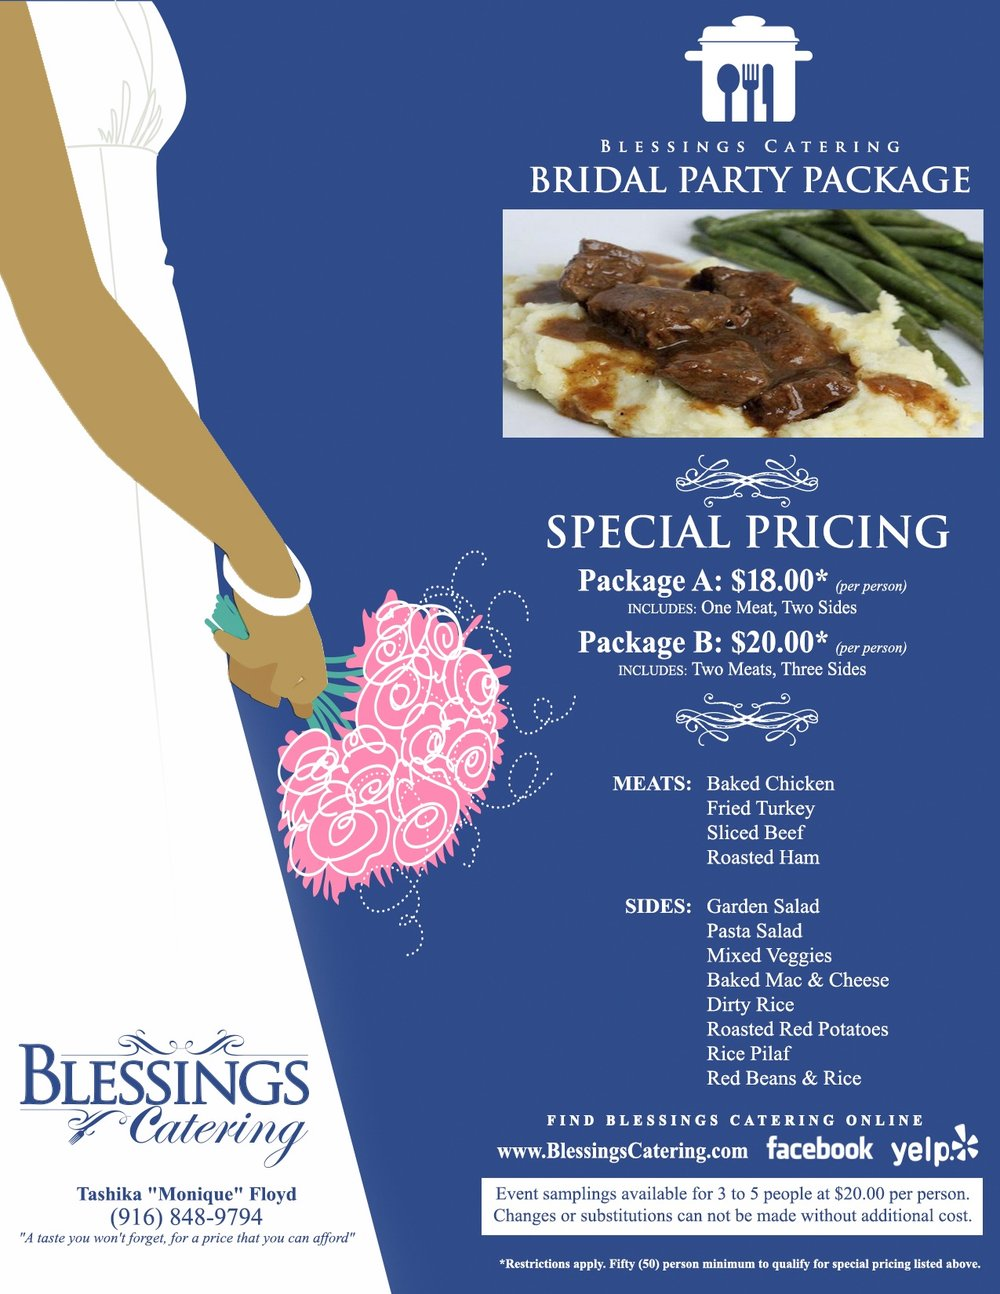 blessings catering